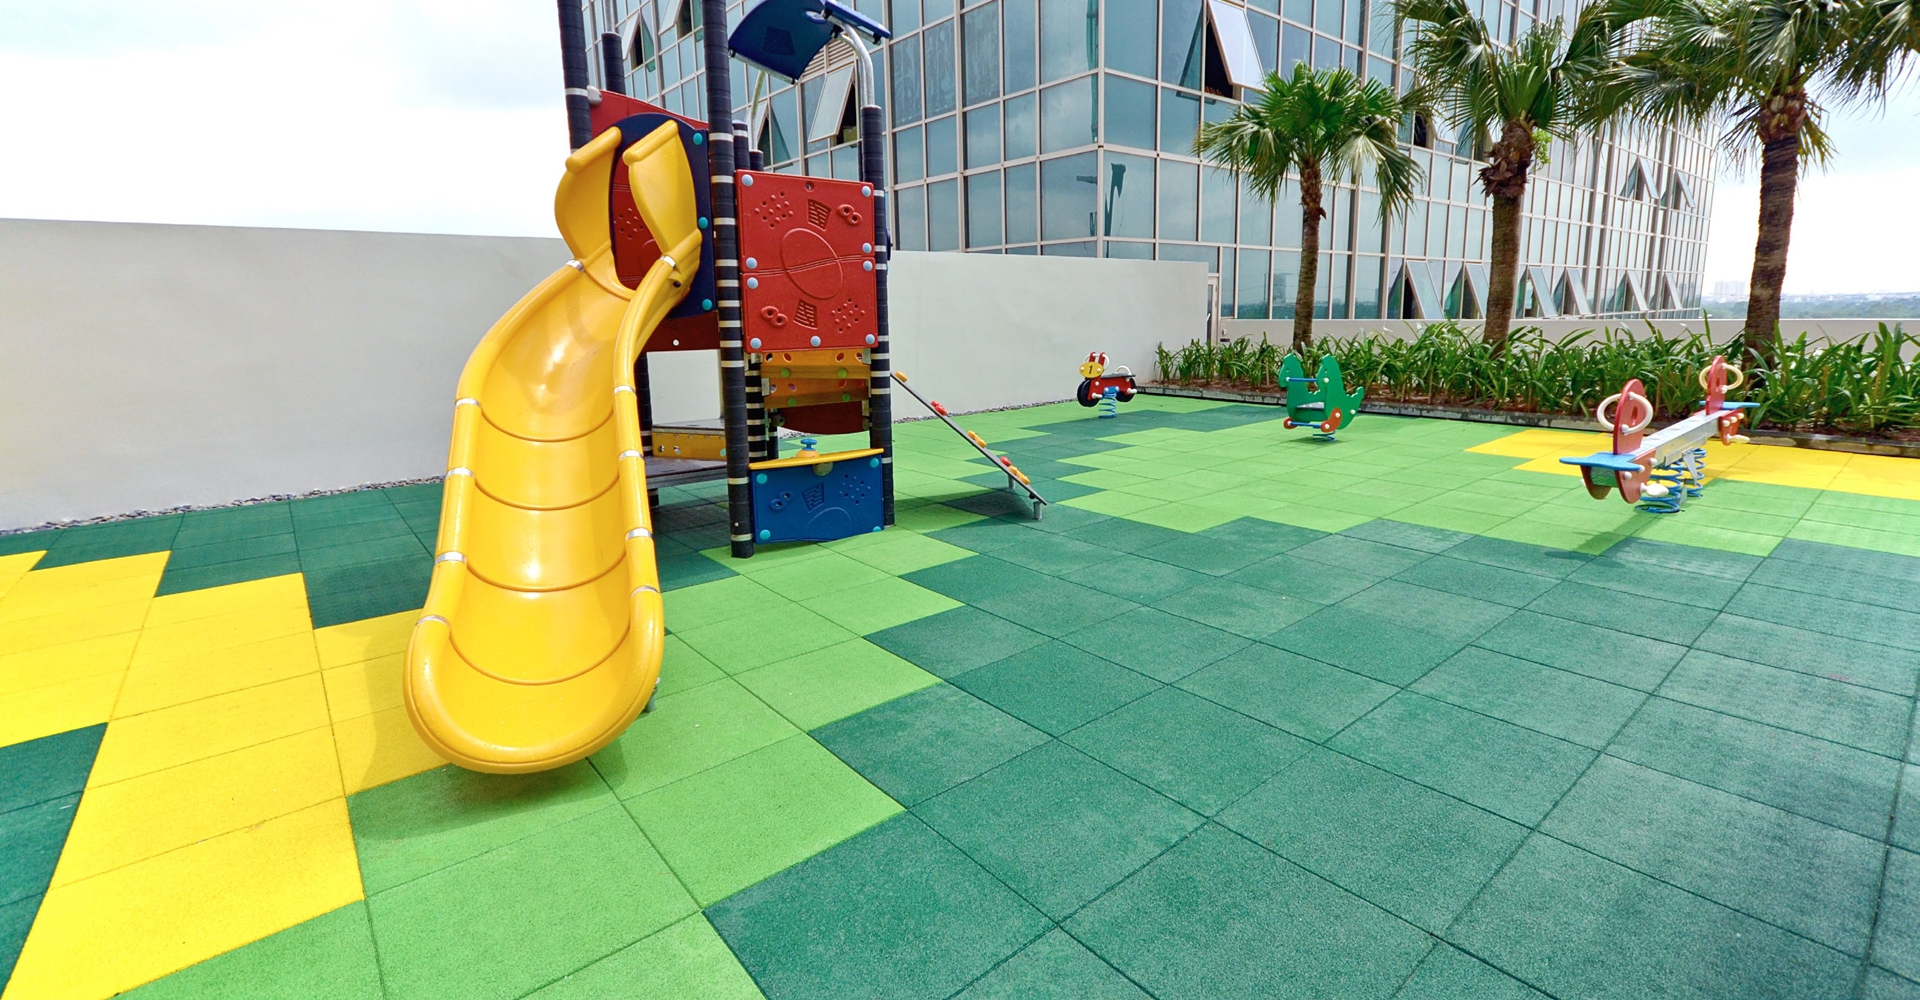 B2B RUBBER AND SPORTS FLOOR SYSTEMS